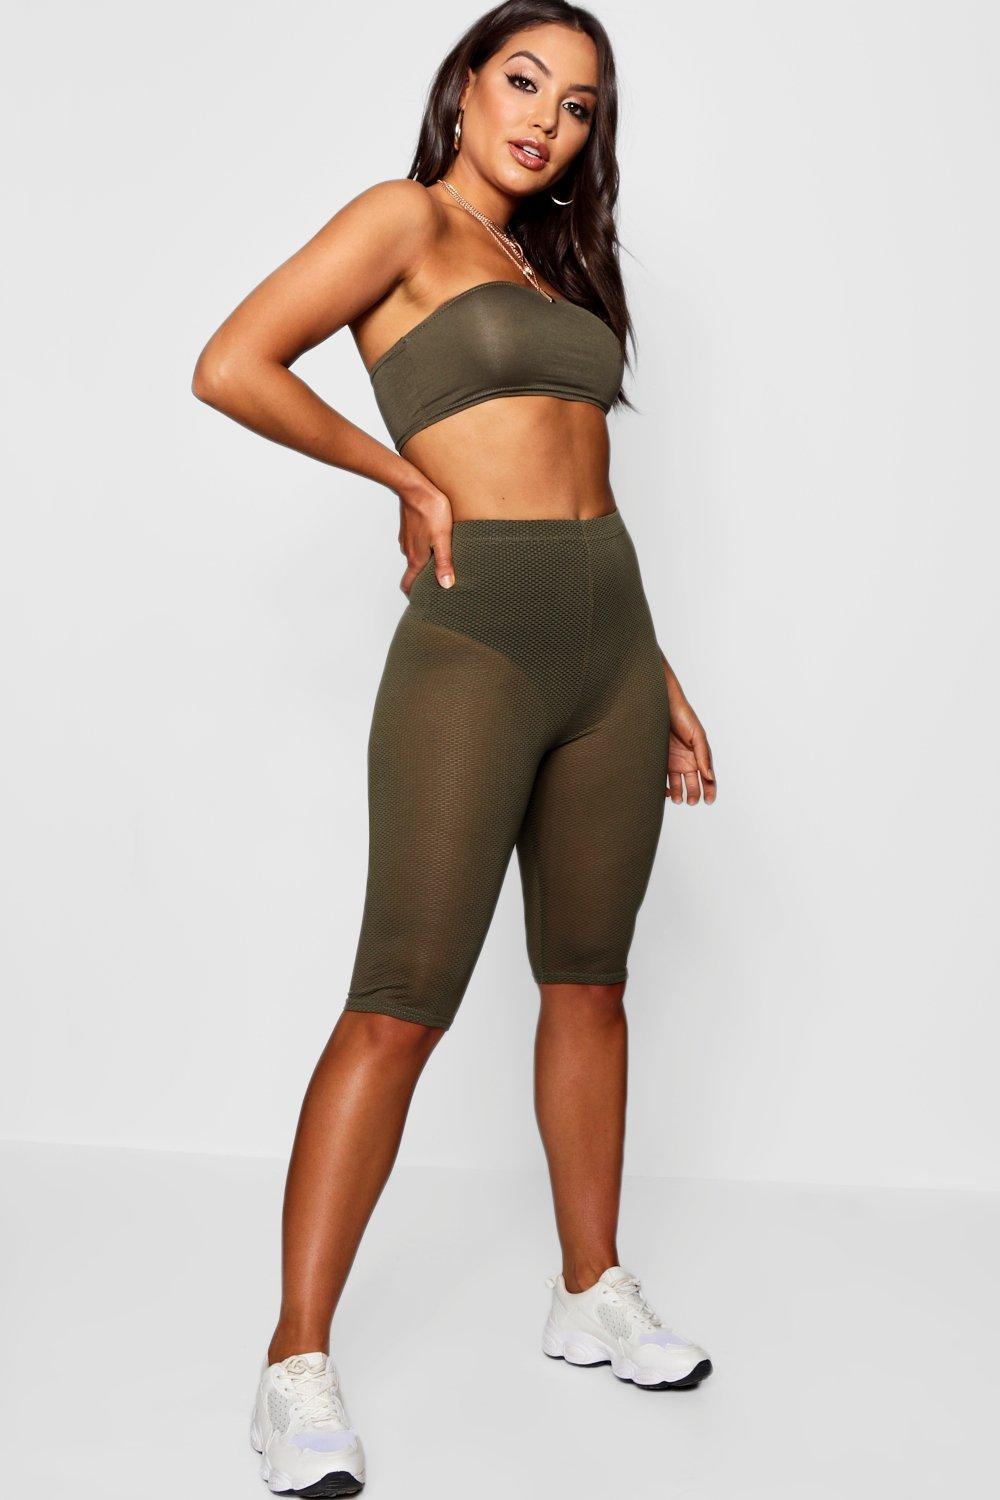 Cleo Sheer Mesh Knee Length Leggings khaki